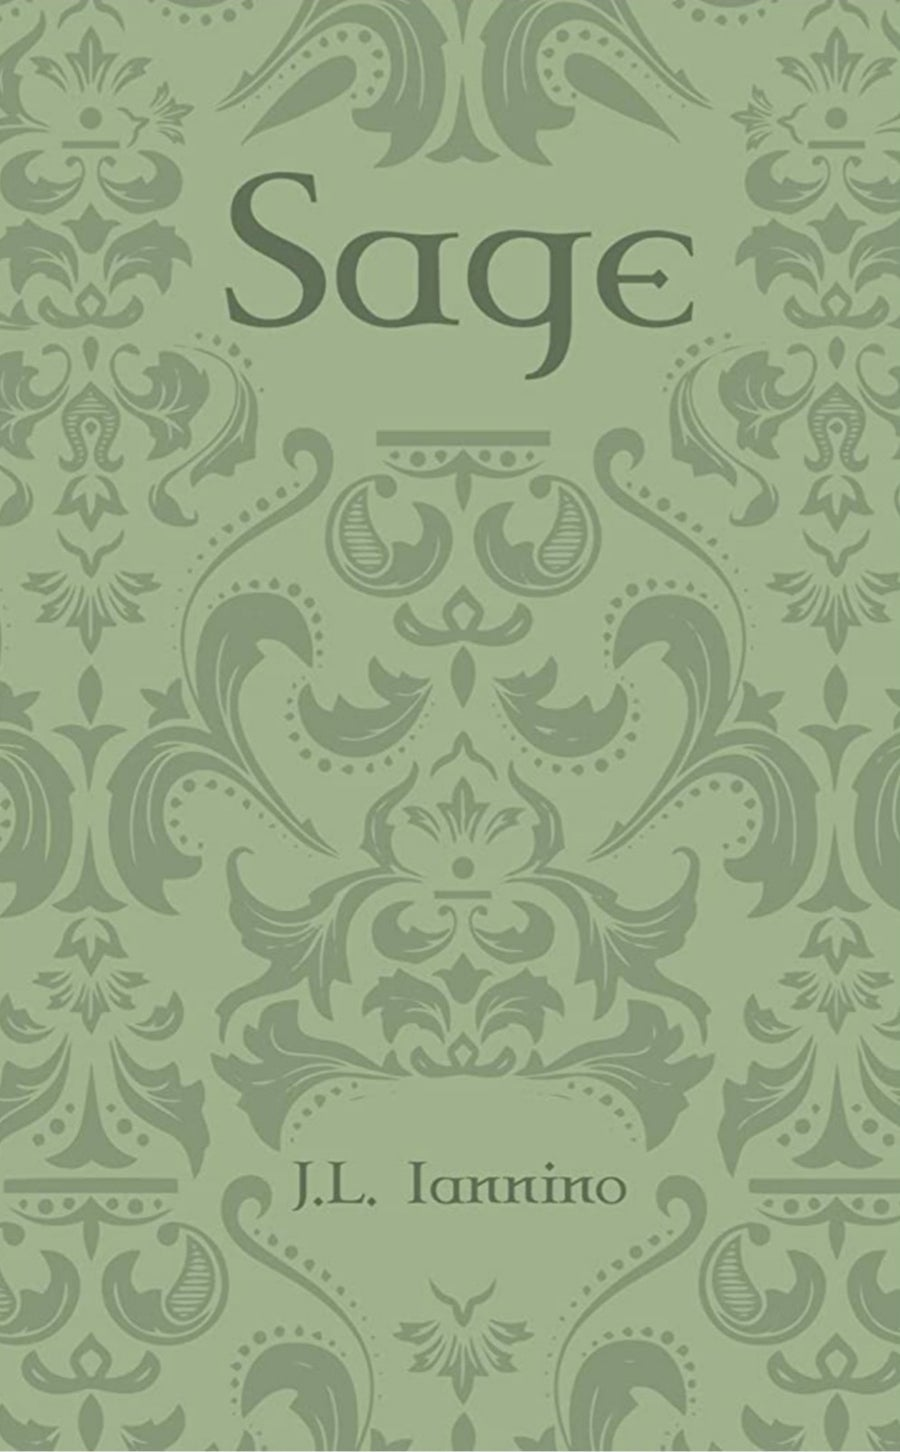 Image of *Sage is available on all Amazon market places worldwide (link below).